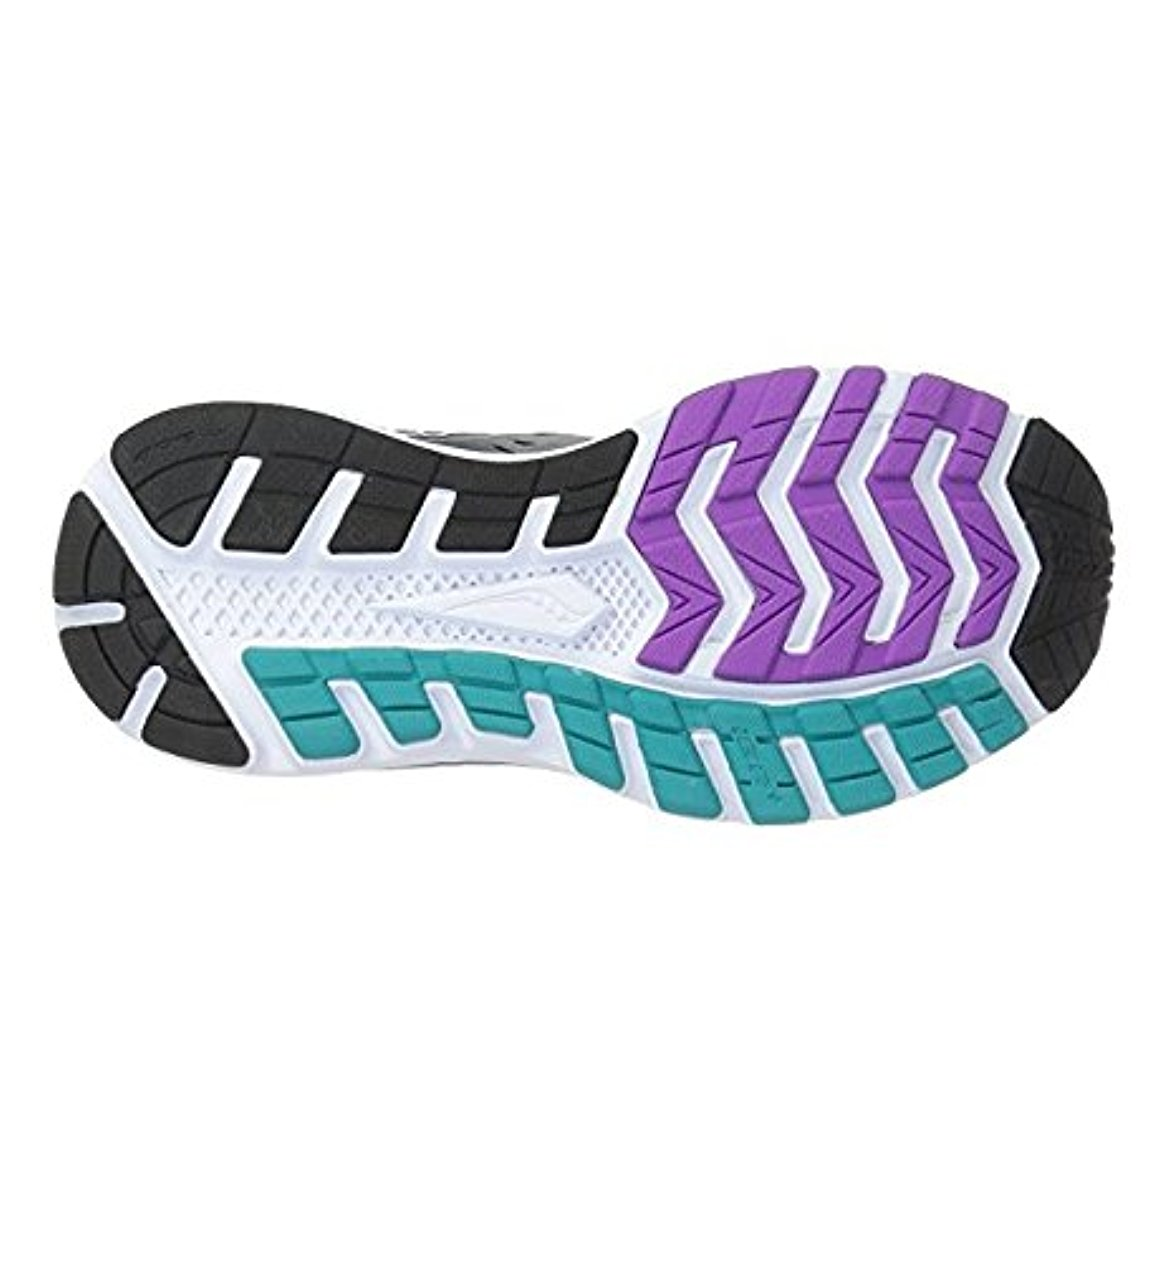 Saucony Women's Breakthru 3 M Running Shoe, Grey/Purple Teal, 8.5 M 3 US 14155c